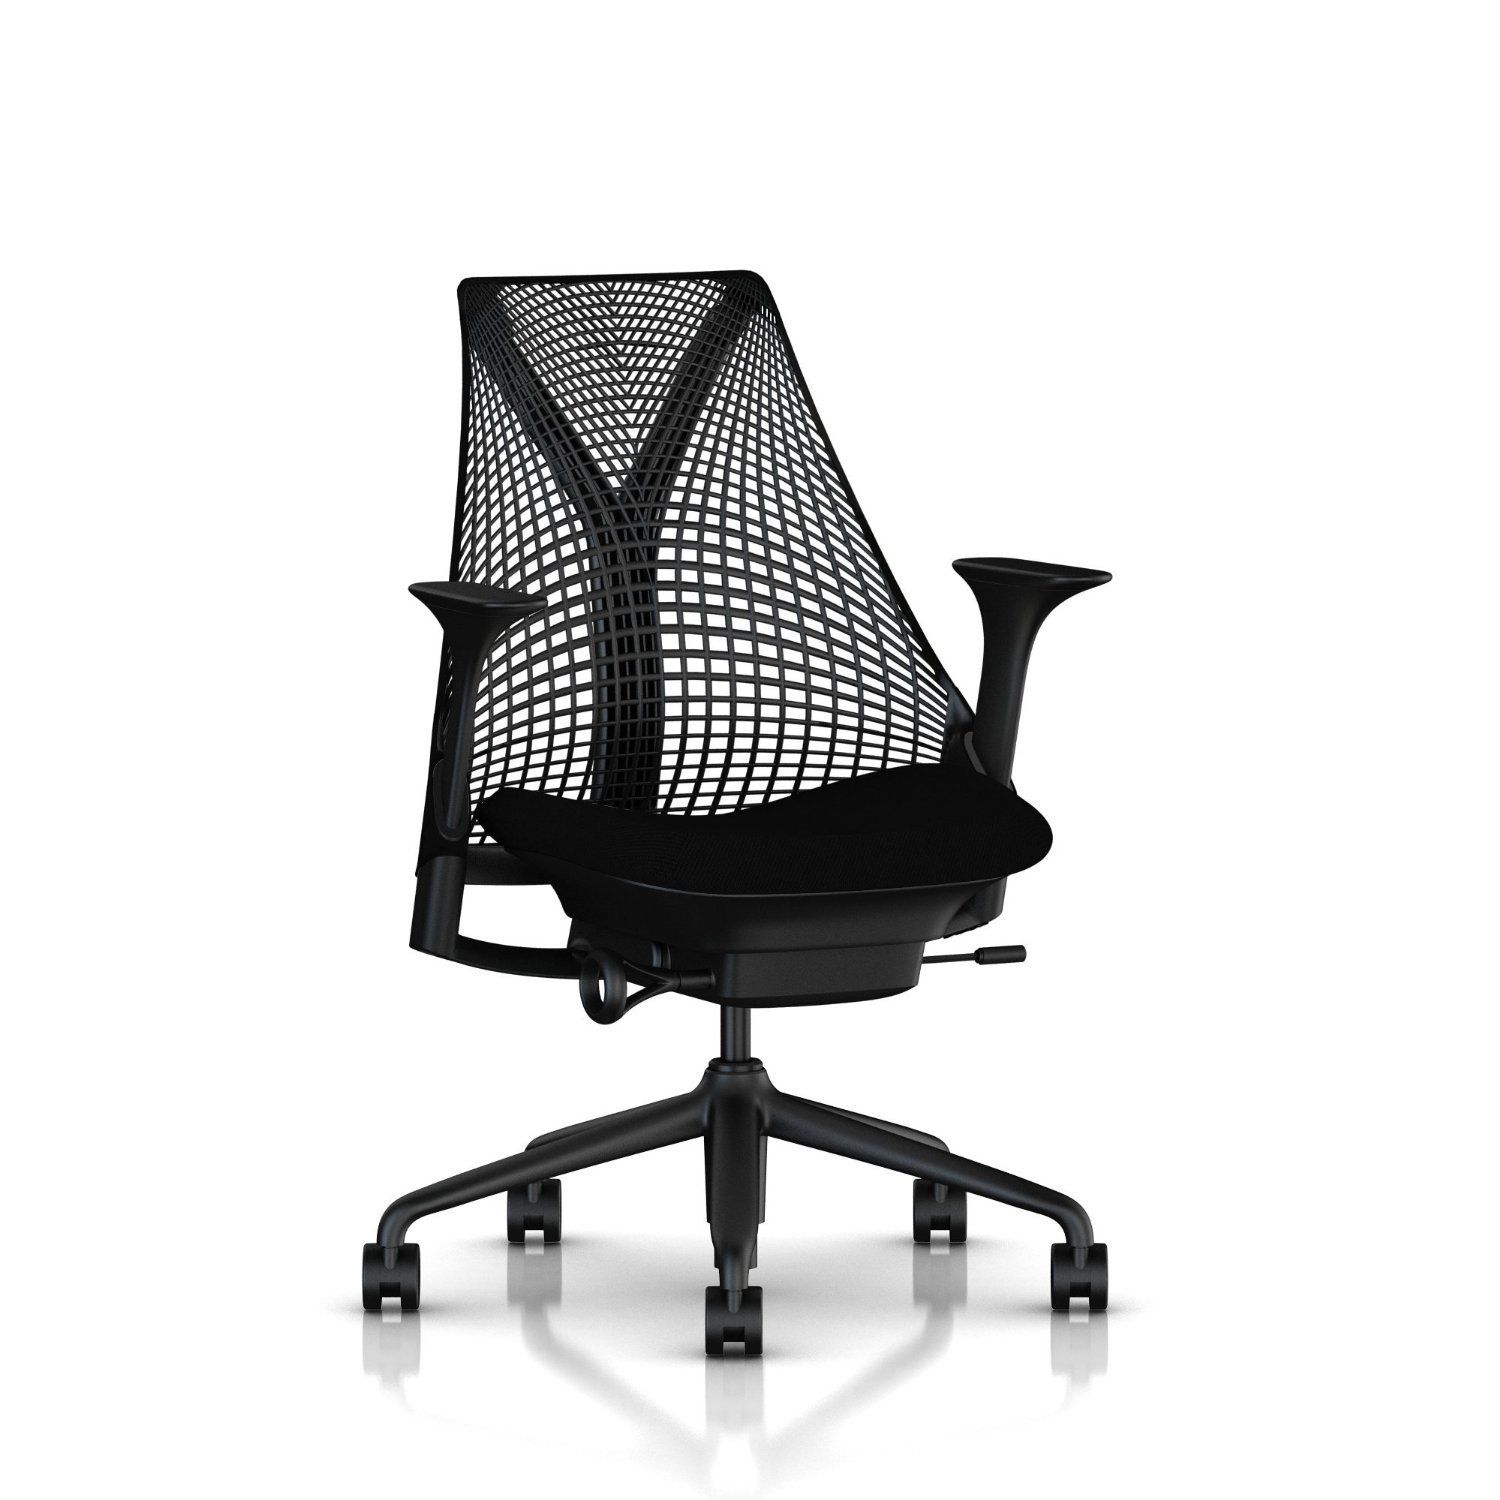 Herman Miller Sayl Task Chair: Tilt Limiter - Stationary Seat Depth - Height Adj Arms - Standard Carpet Casters - Black Base & Frame